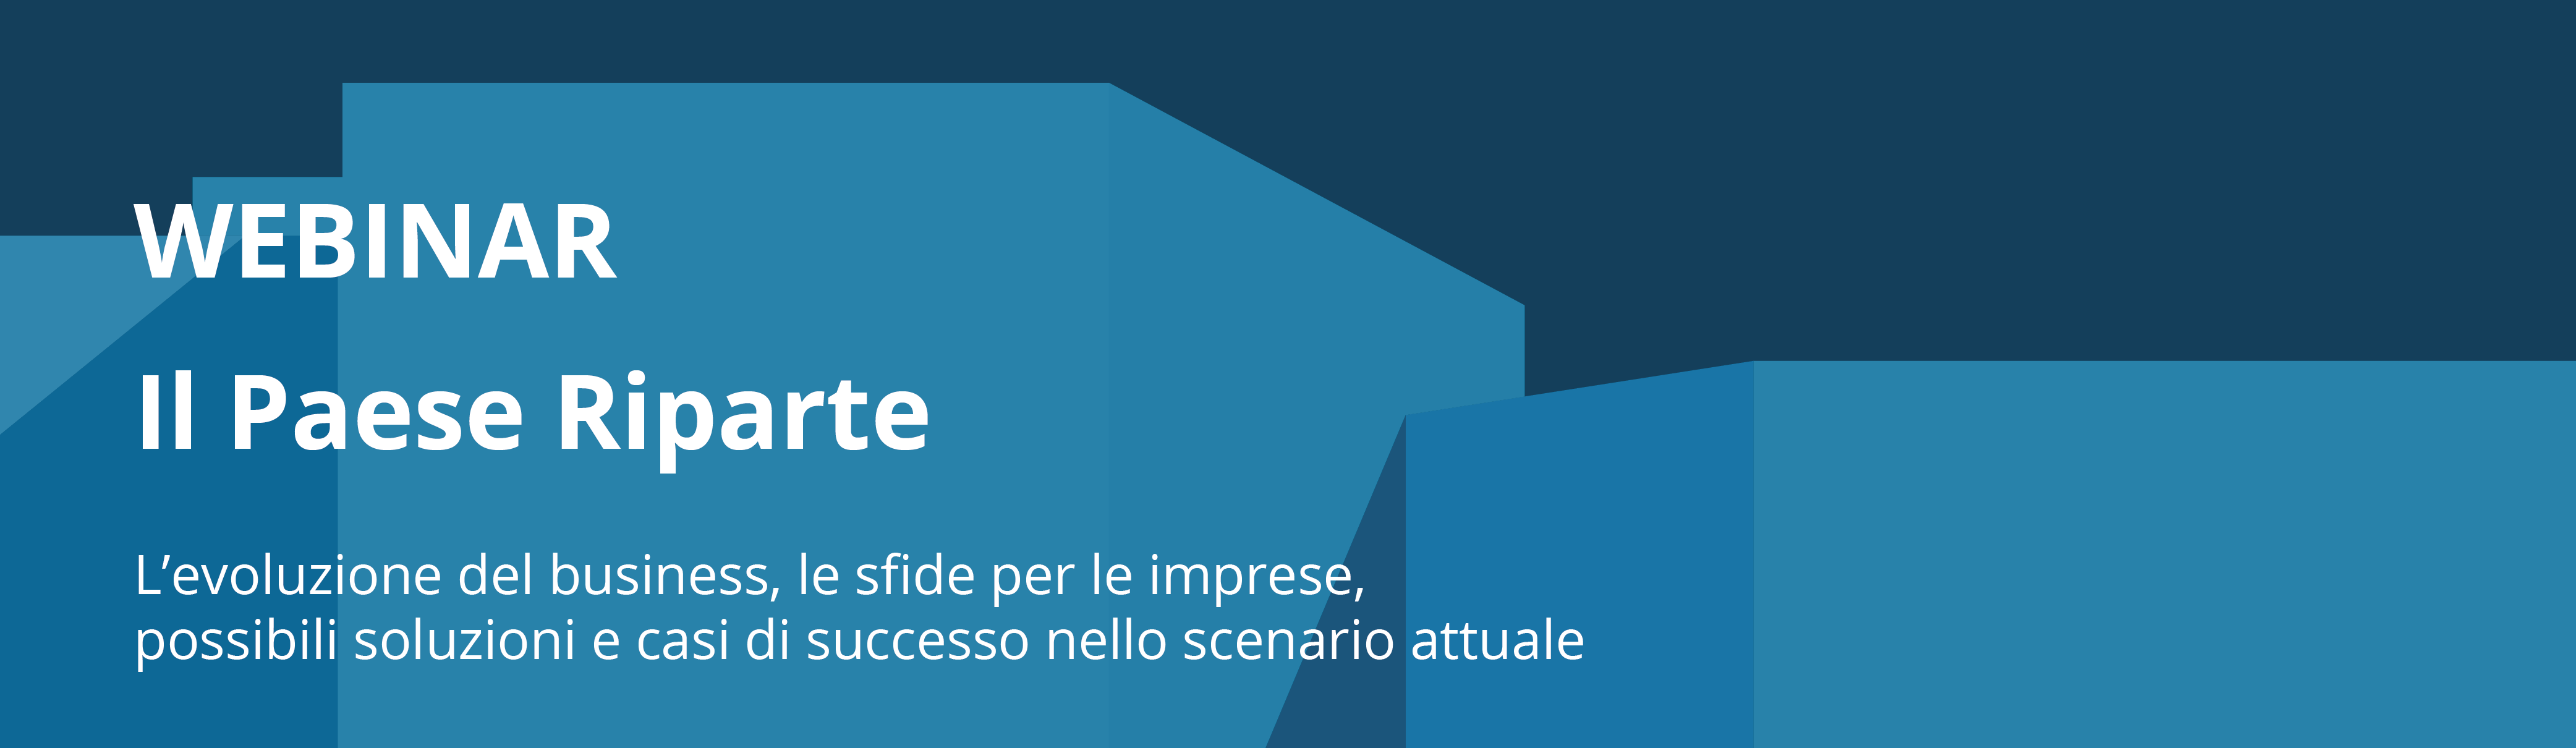 Webinar Tinexta Il Paese riparte - video